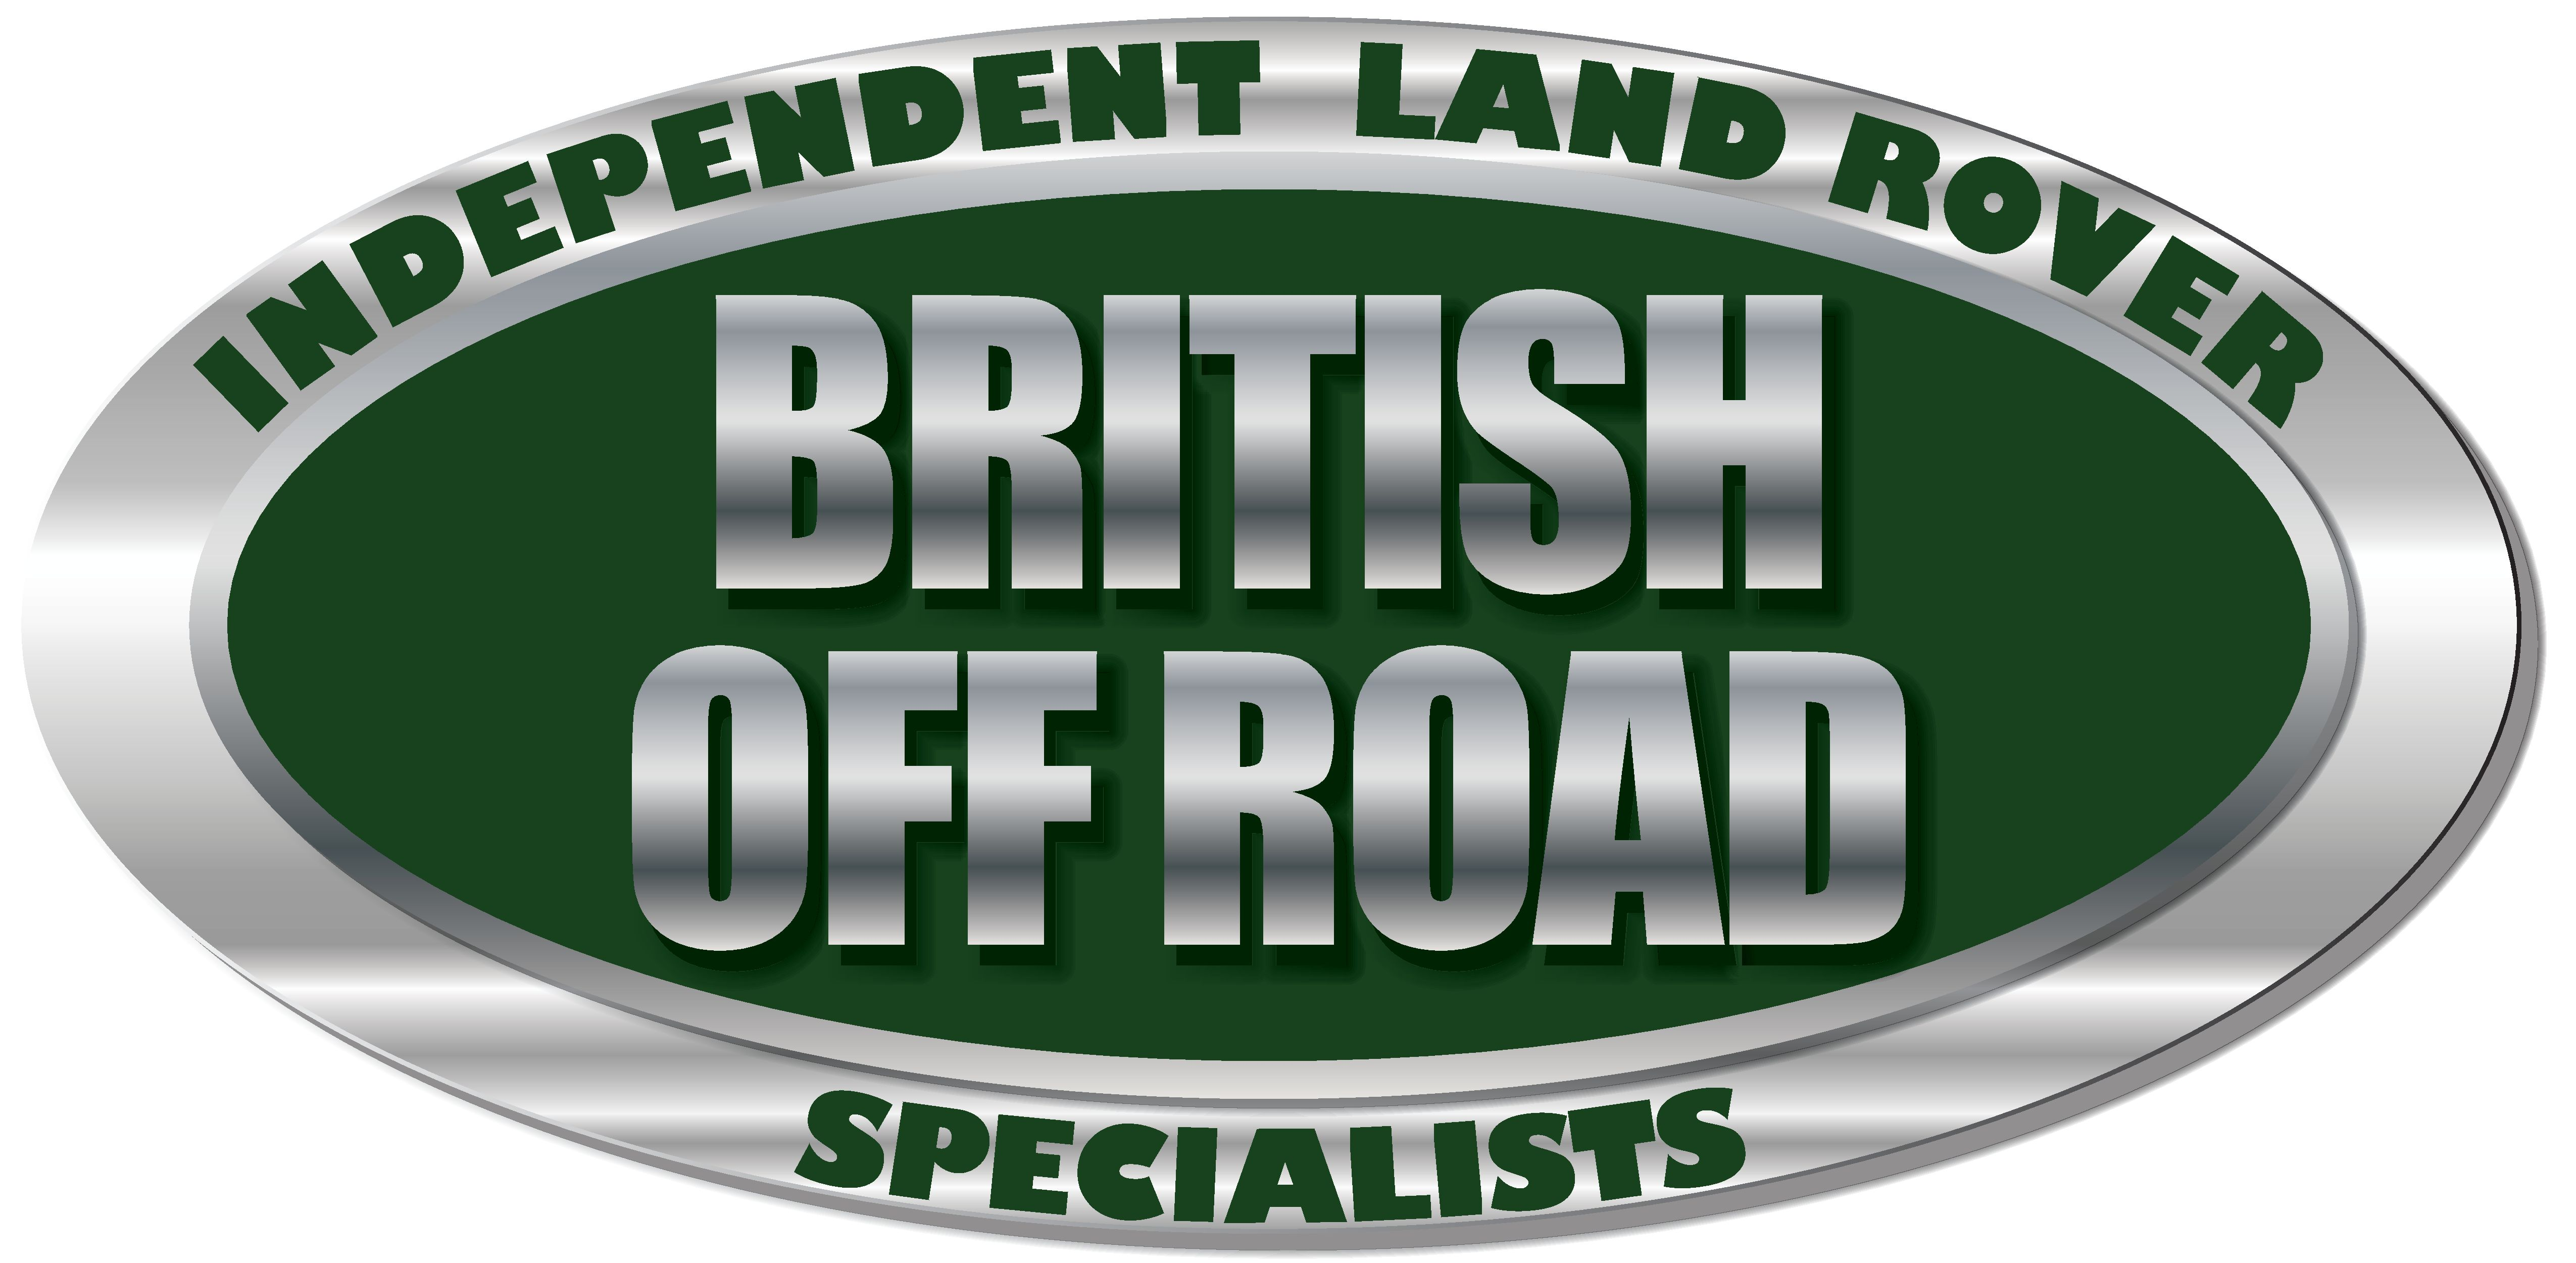 Land Rover Owners Club of Brisbane British froad